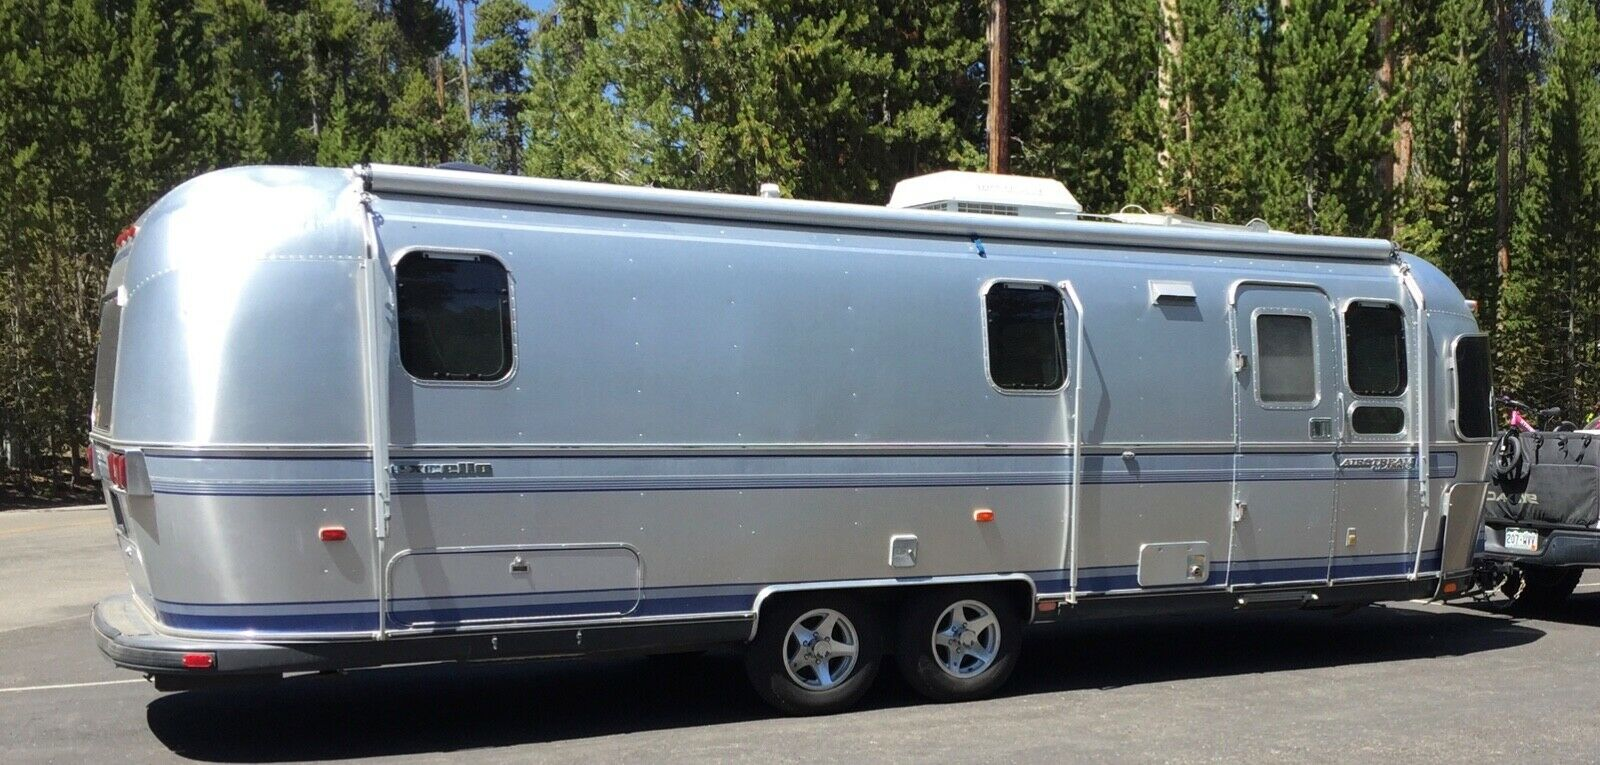 ready for camping 1995 Airstream Excella camper